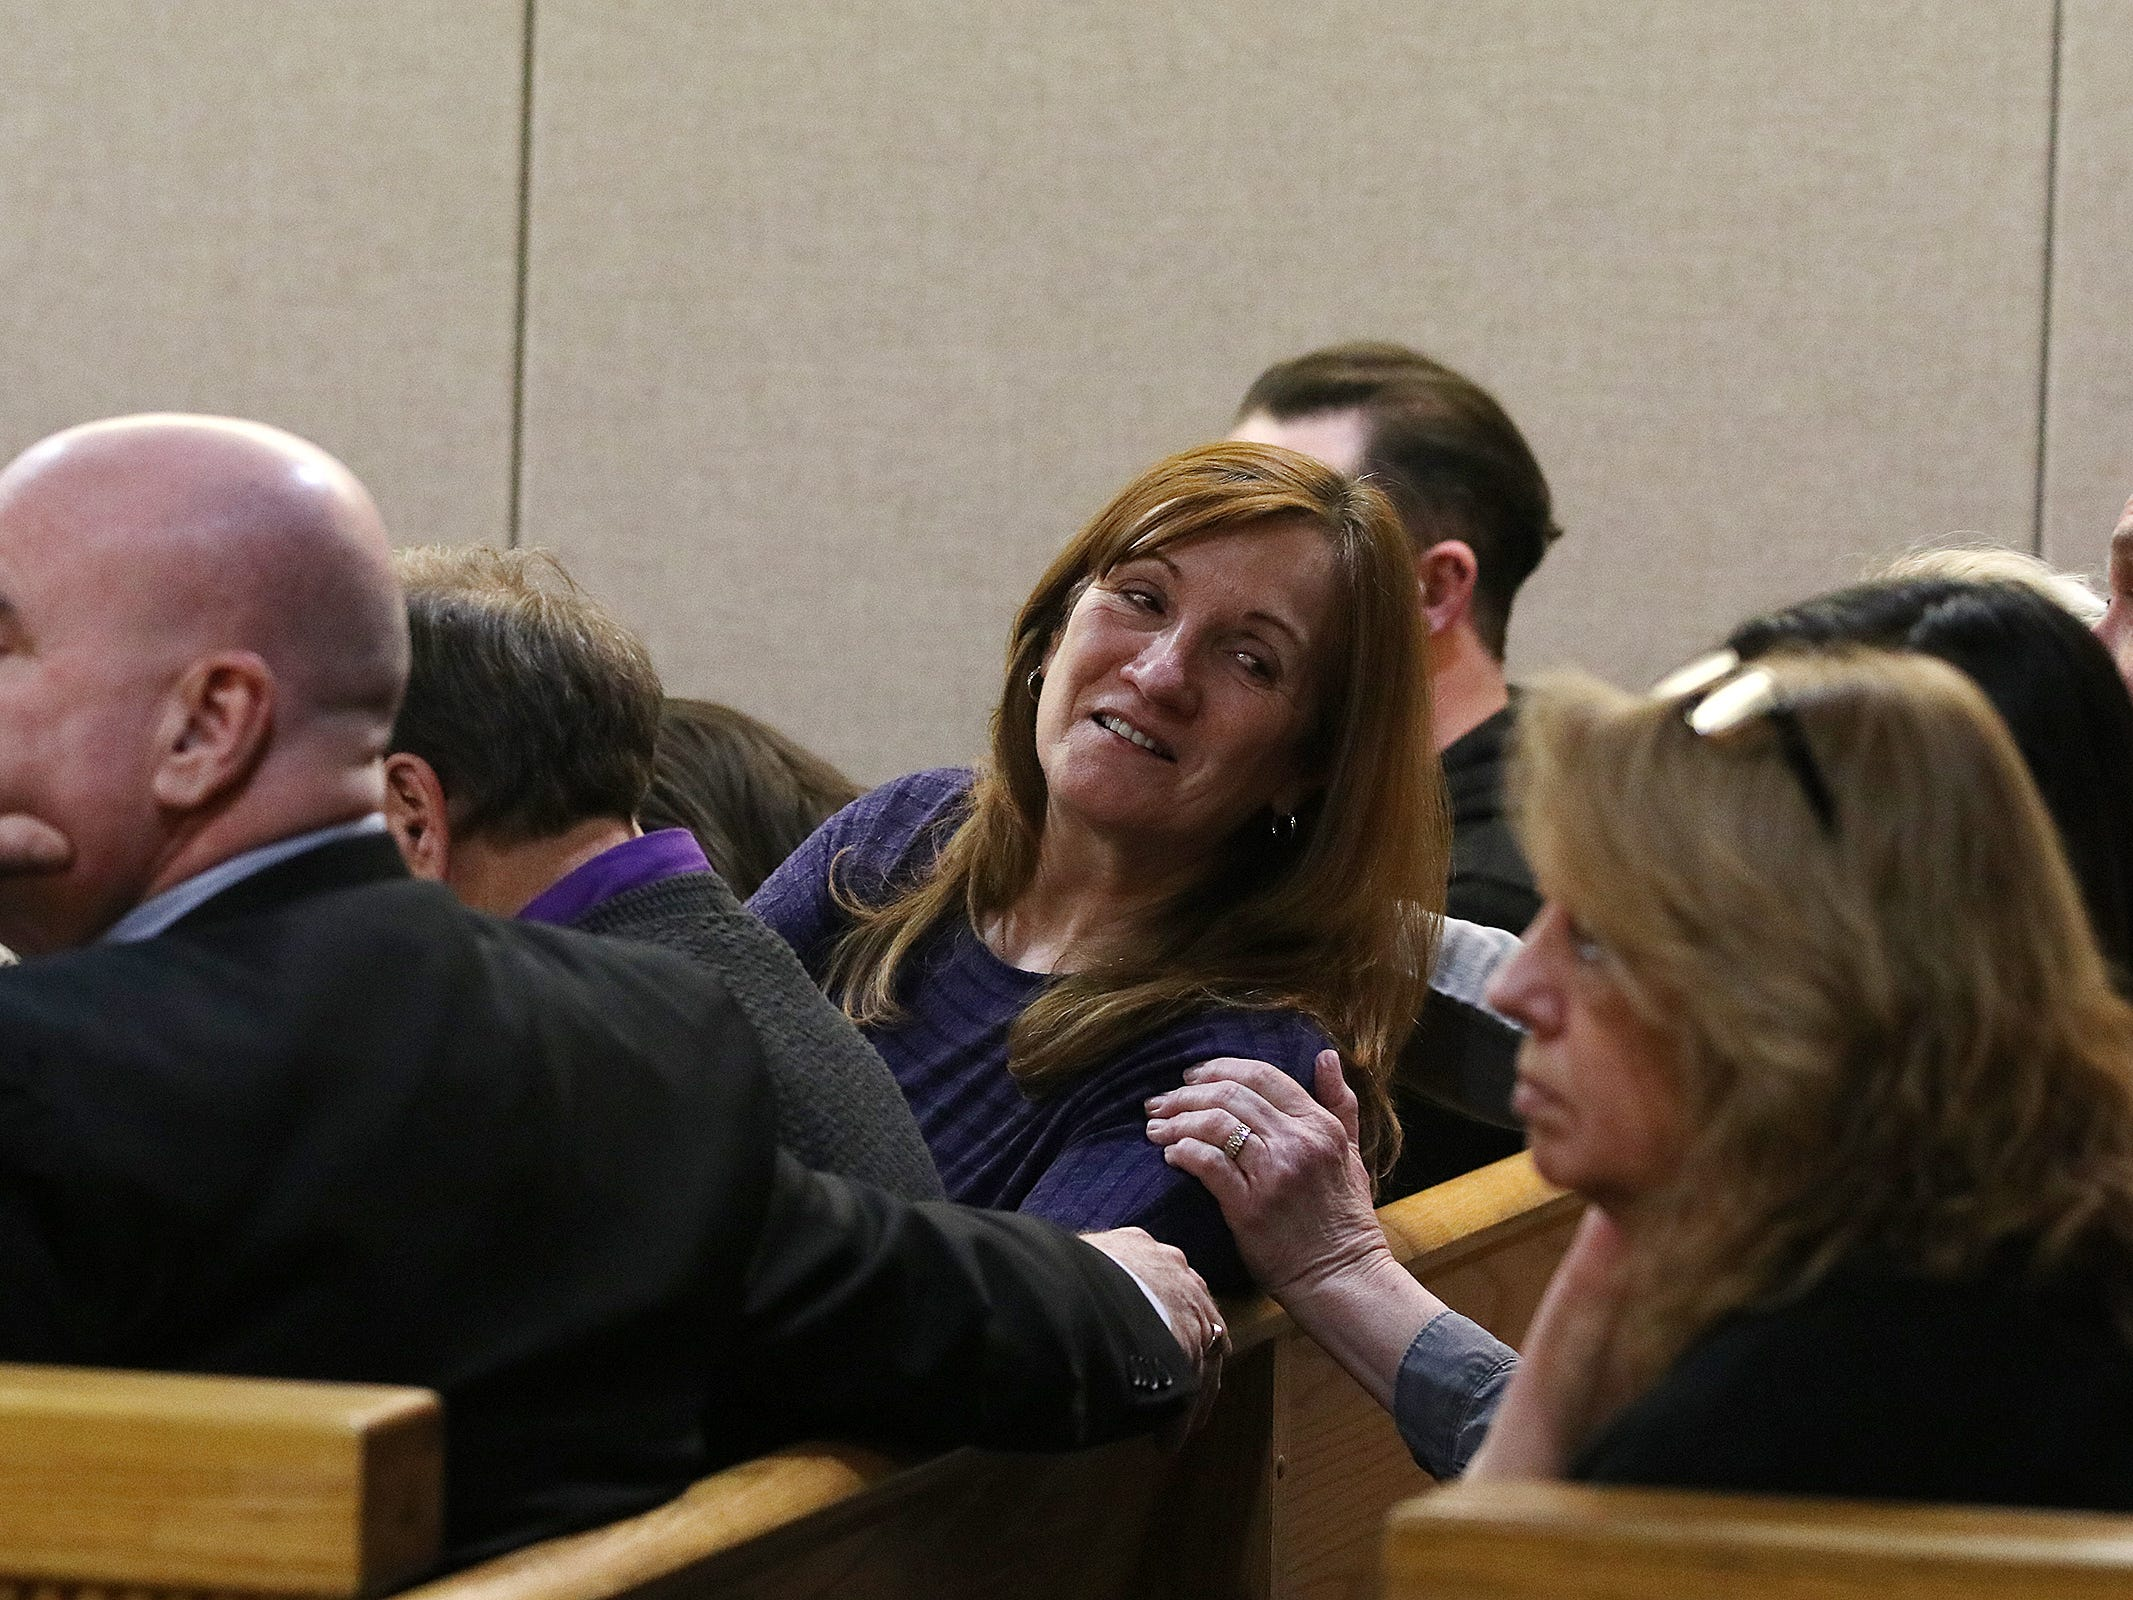 Kristine Eckert, the girlfriend of Sarah Stern's father, MIchael Stern, reacts as the jury finds Liam McAtasney, who is charged with the murder of former high school classmate, Sarah Stern, guilty on all charges before Superior Court Judge Richard W. English at the Monmouth County Courthouse in Freehold, NJ Tuesday, February 26, 2019.